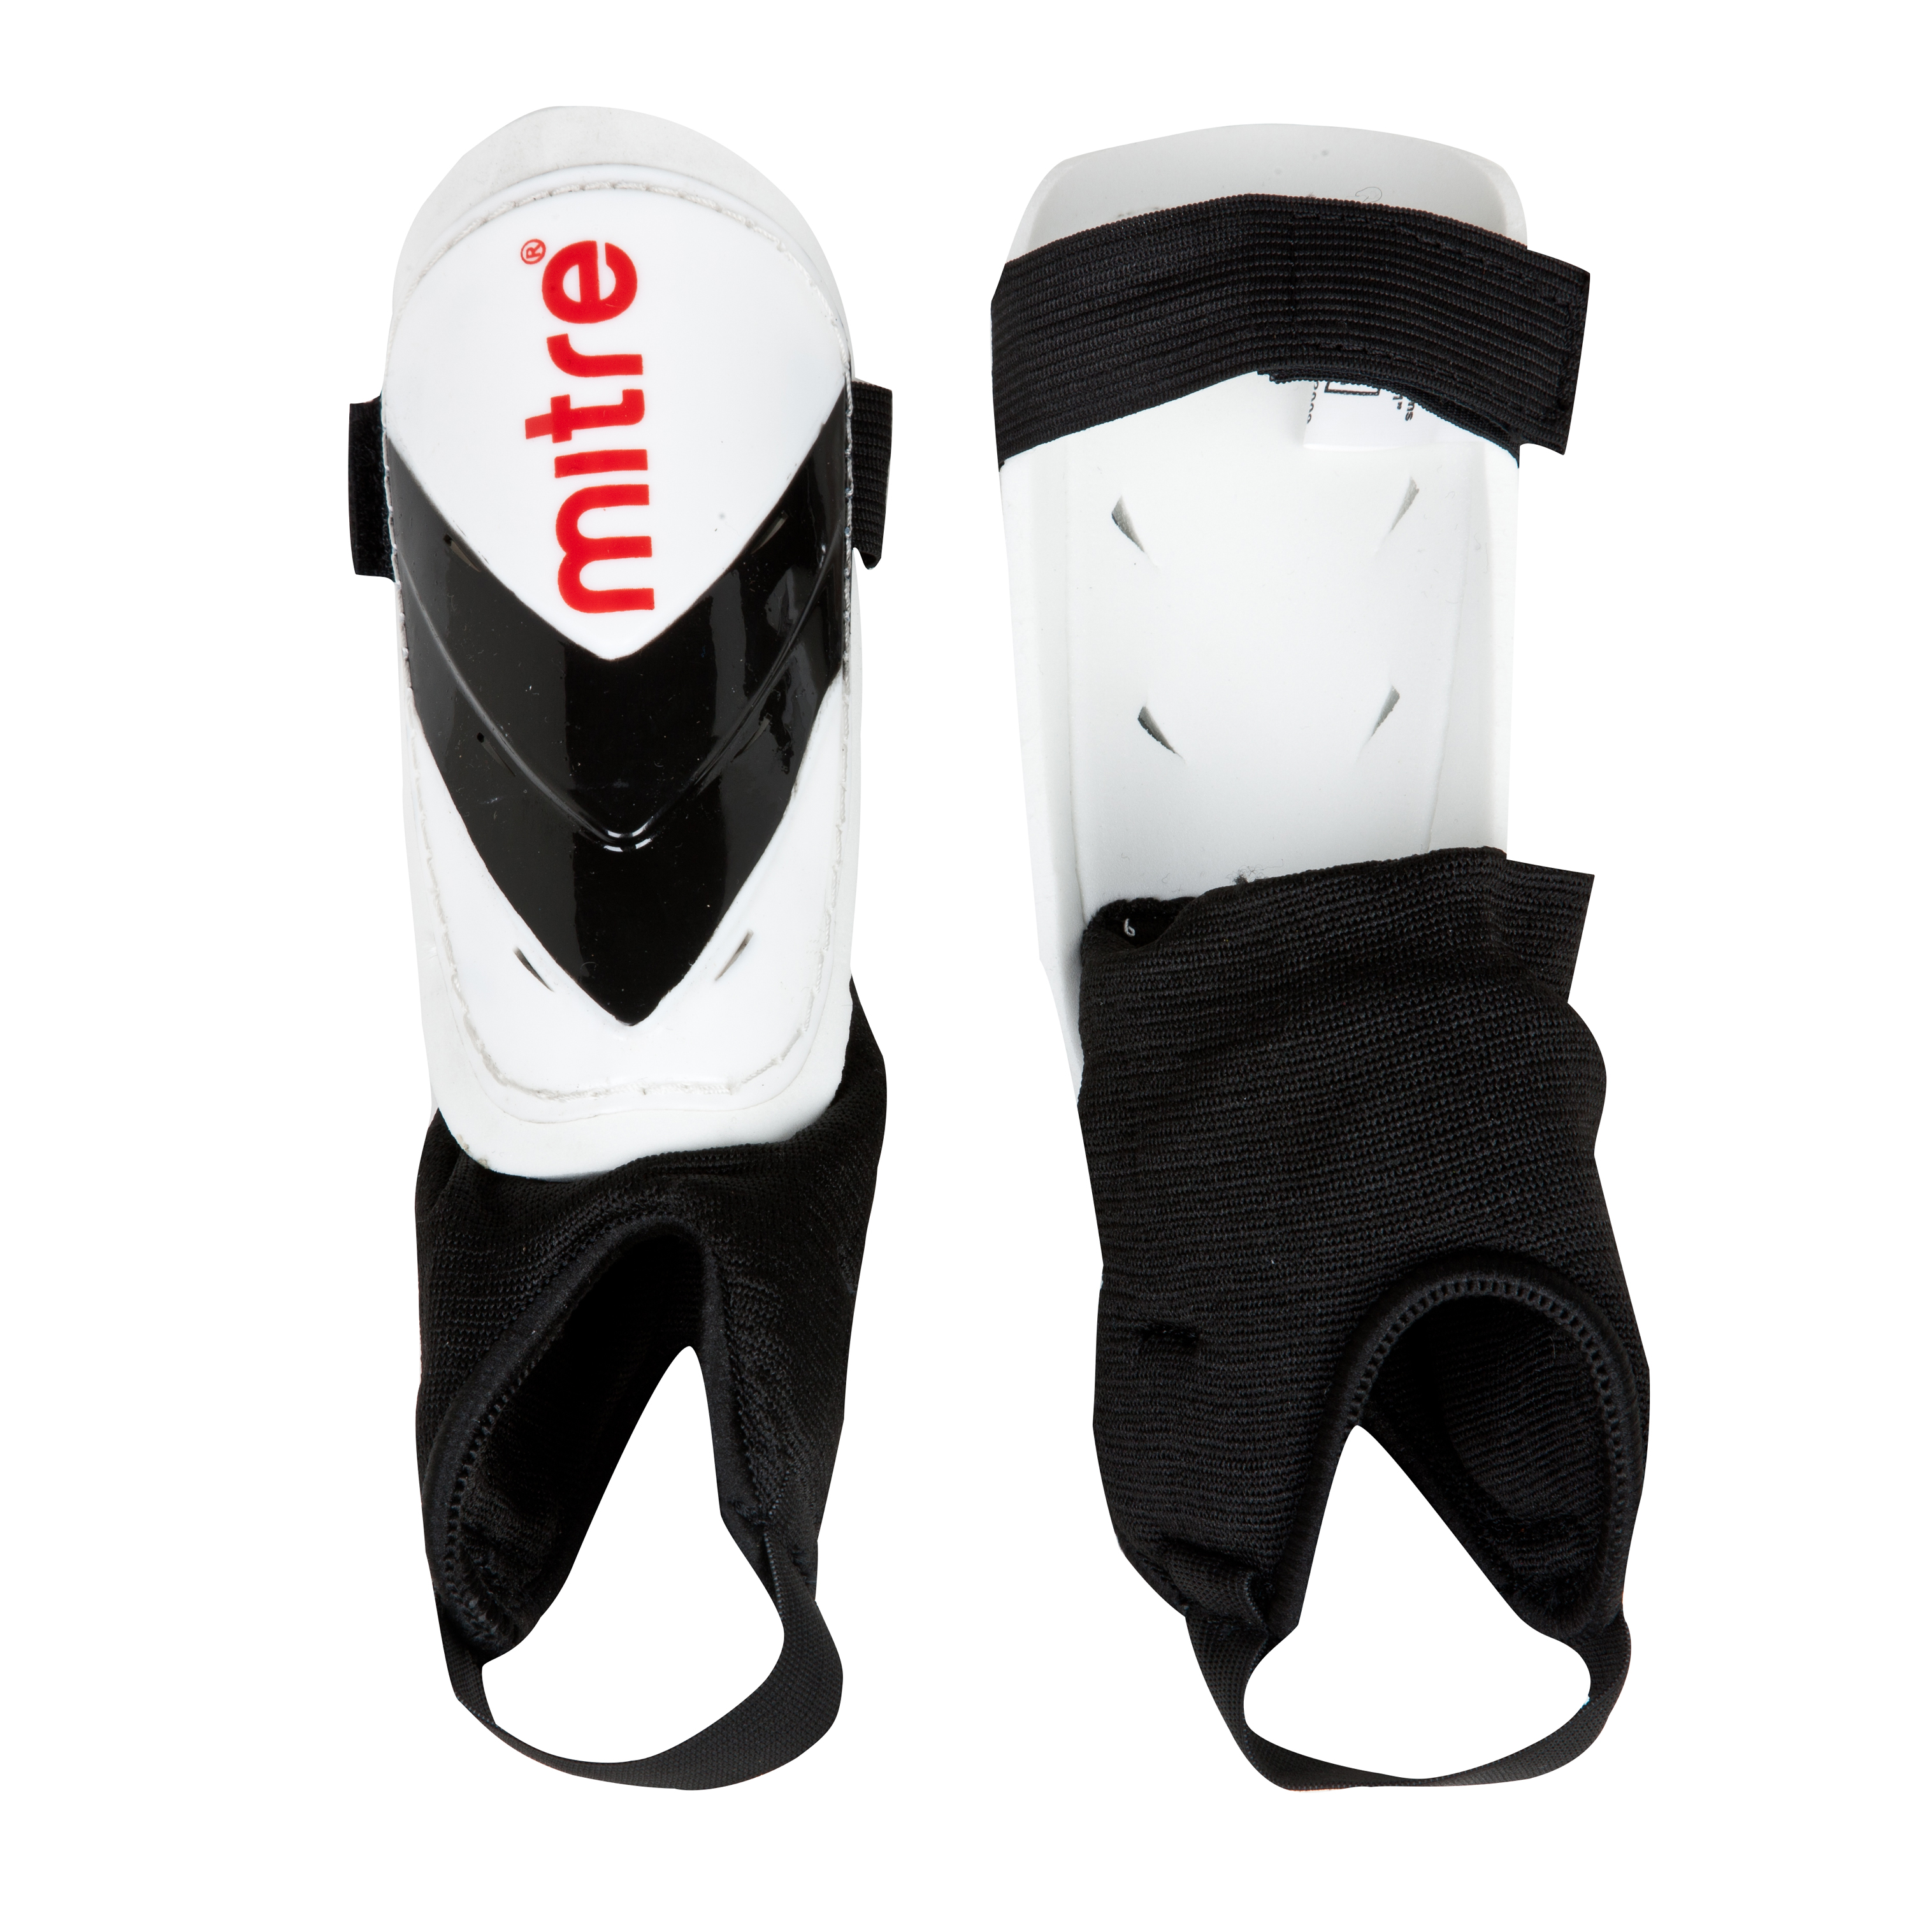 Mitre Mayan Shinguards - White/Black/Red